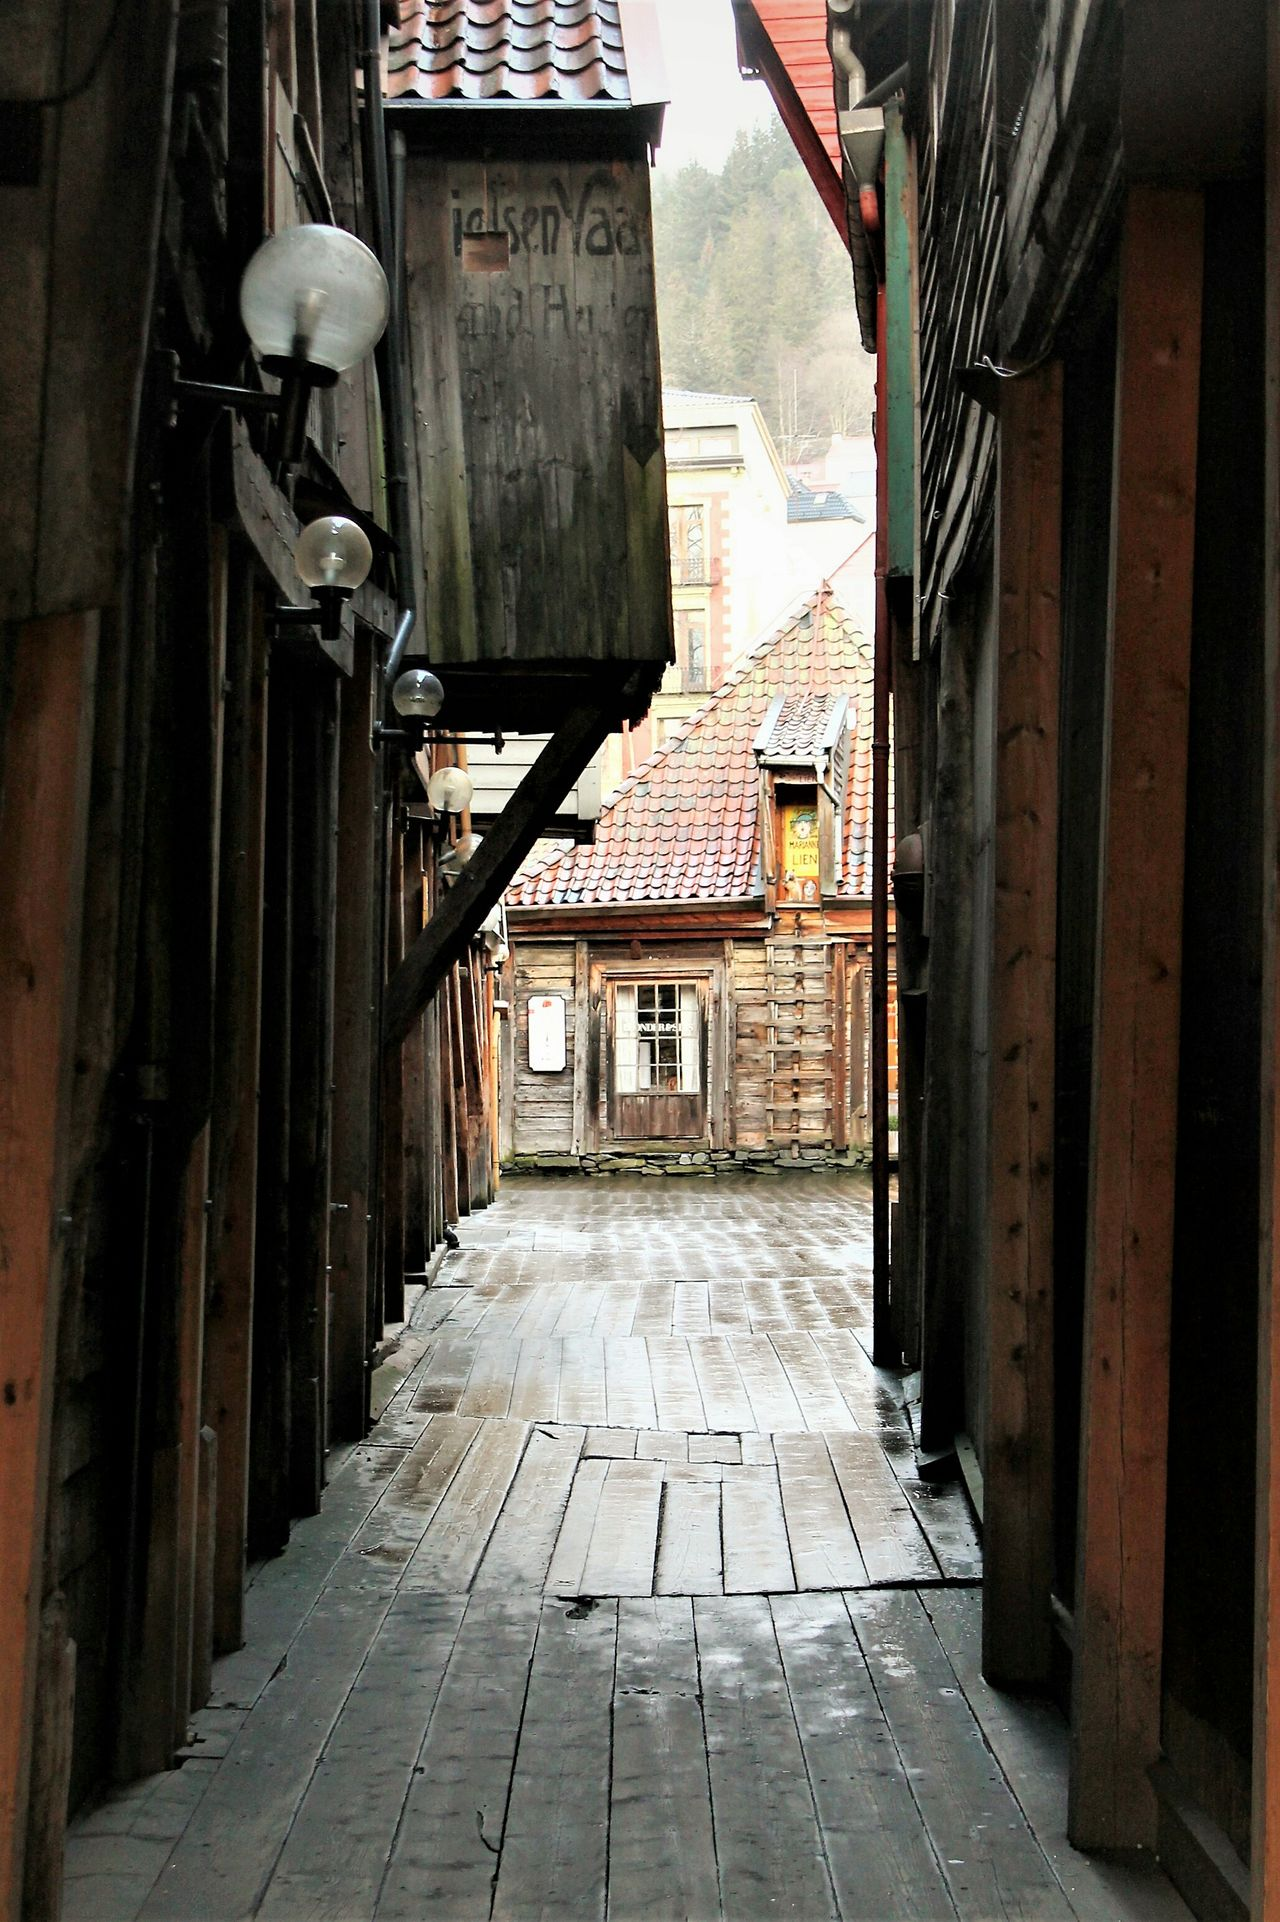 Bergen Oldtown Wooden Structure Harbourside Built Structure Architecture Building Exterior The Way Forward Steps NorwayTourism Travel Destinations Visitnorway Cityscape Norway Eyem Gallery City No People Day City Outdoors The Street Photographer - 2017 EyeEm Awards